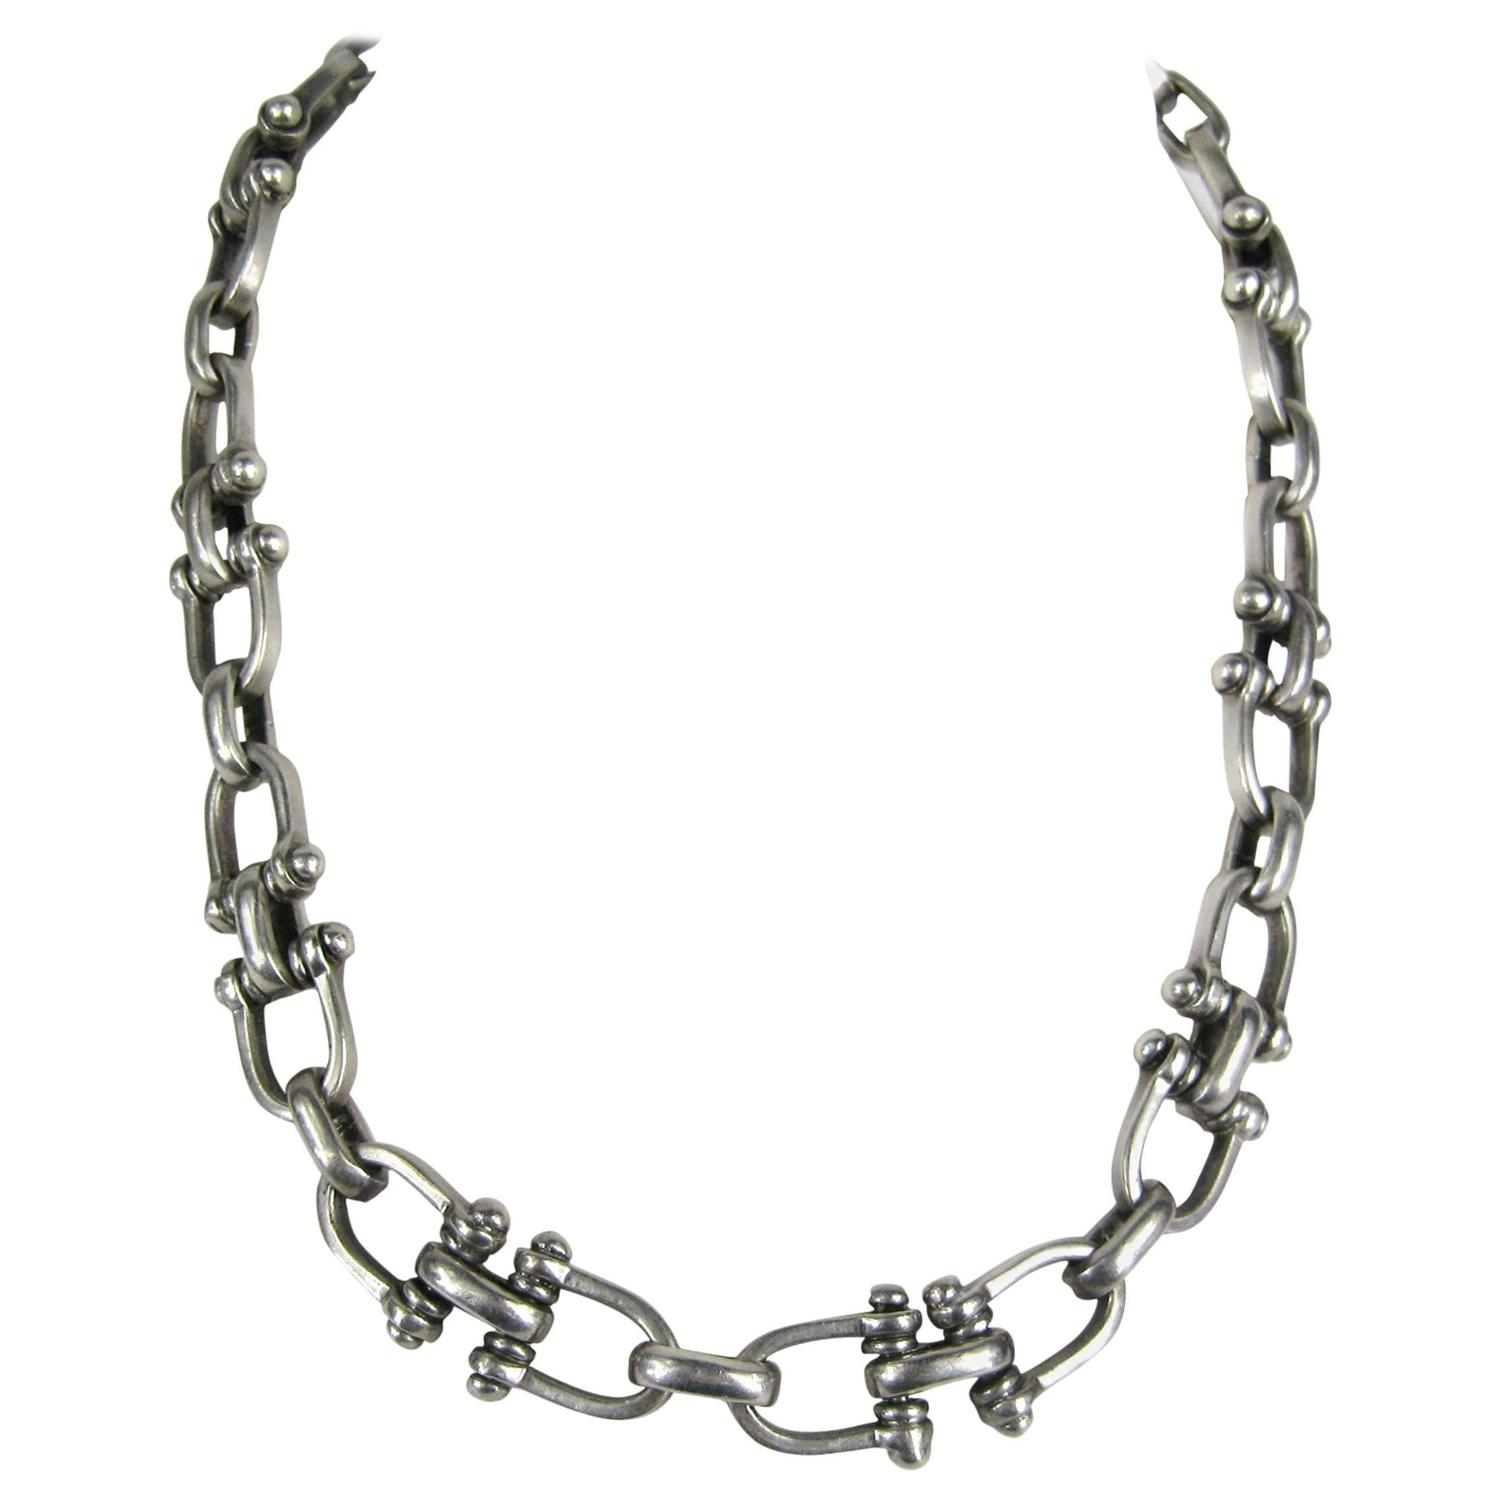 Heavy Sterling Silver Taxco Vintage Link Necklace For Sale